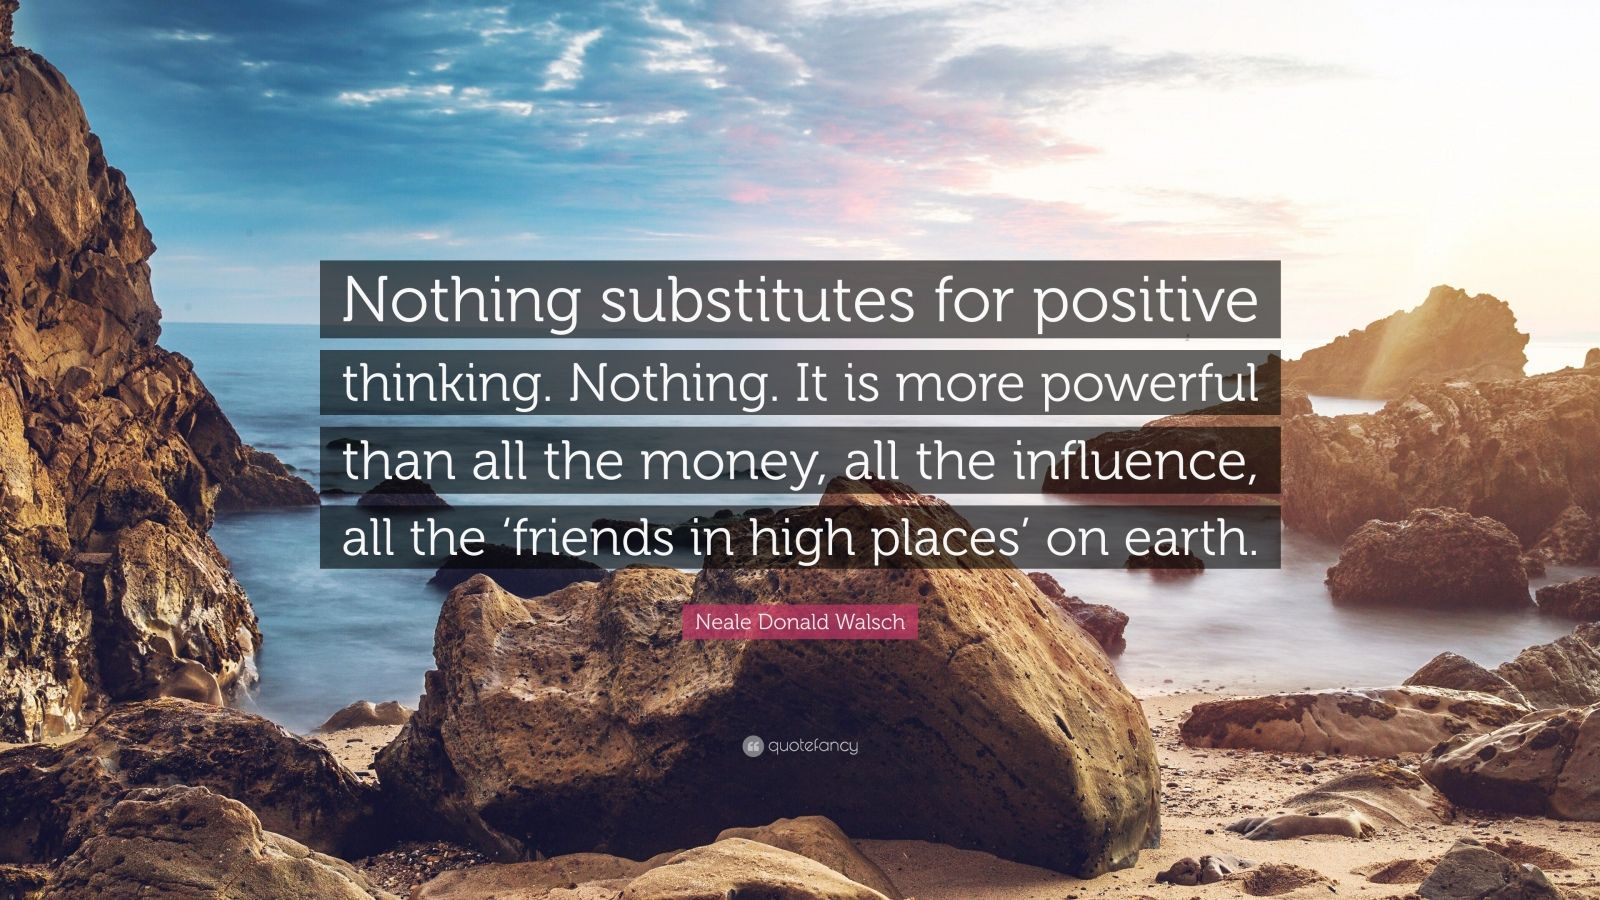 """Neale Donald Walsch Quote: """"Nothing substitutes for positive thinking. Nothing. It is more powerful than all the money, all the influence, all the 'friends in high places' on earth."""""""